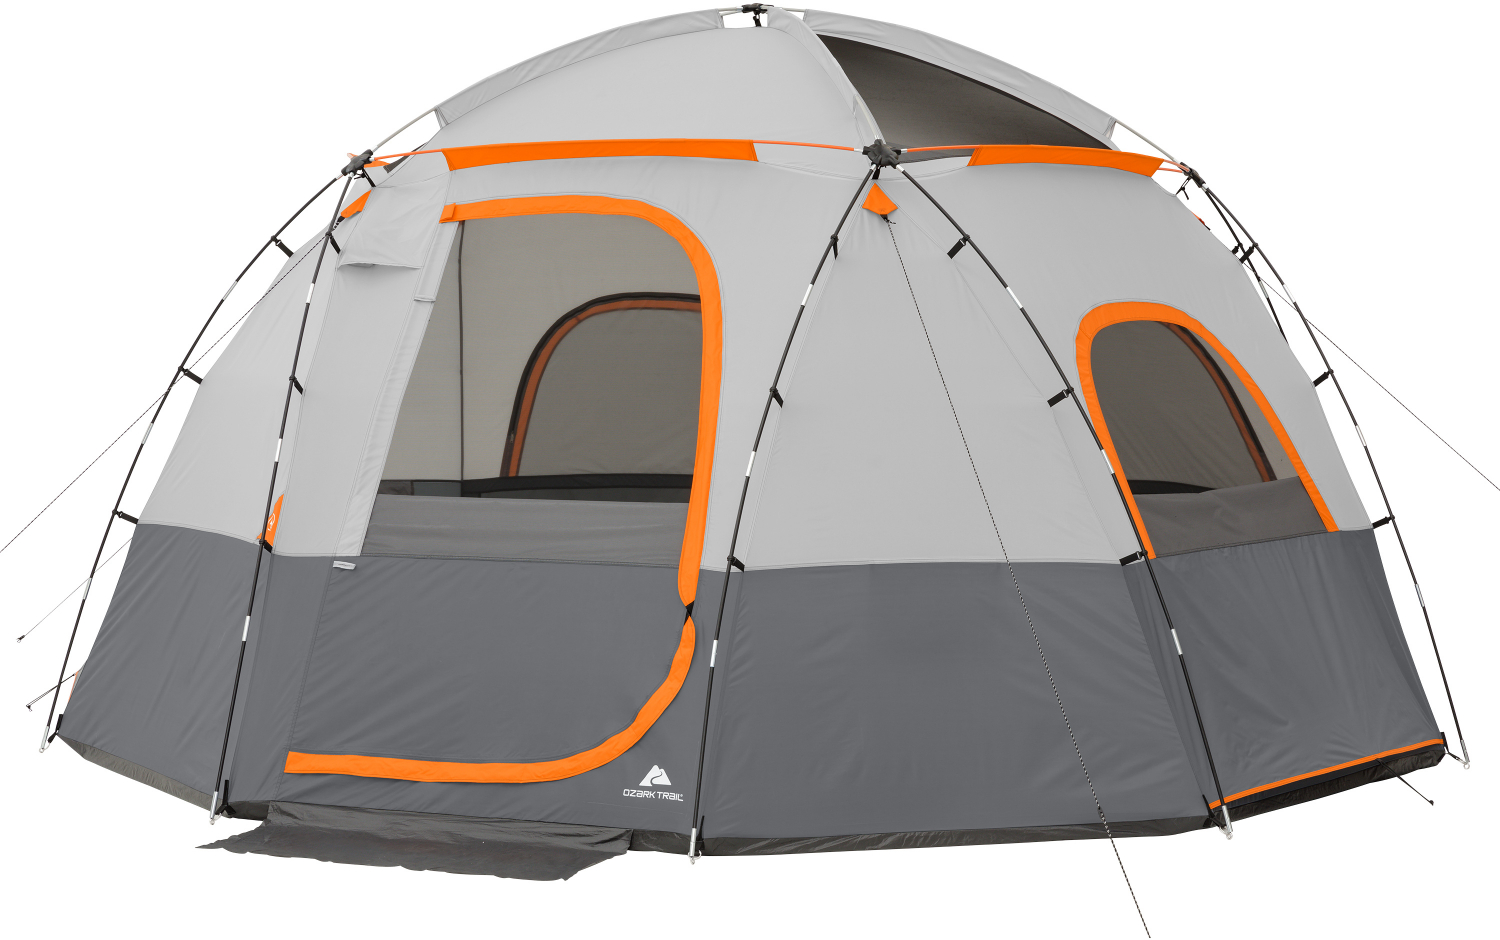 6-Person Ozark Trail Camping Sphere Tent With Rope Light ...